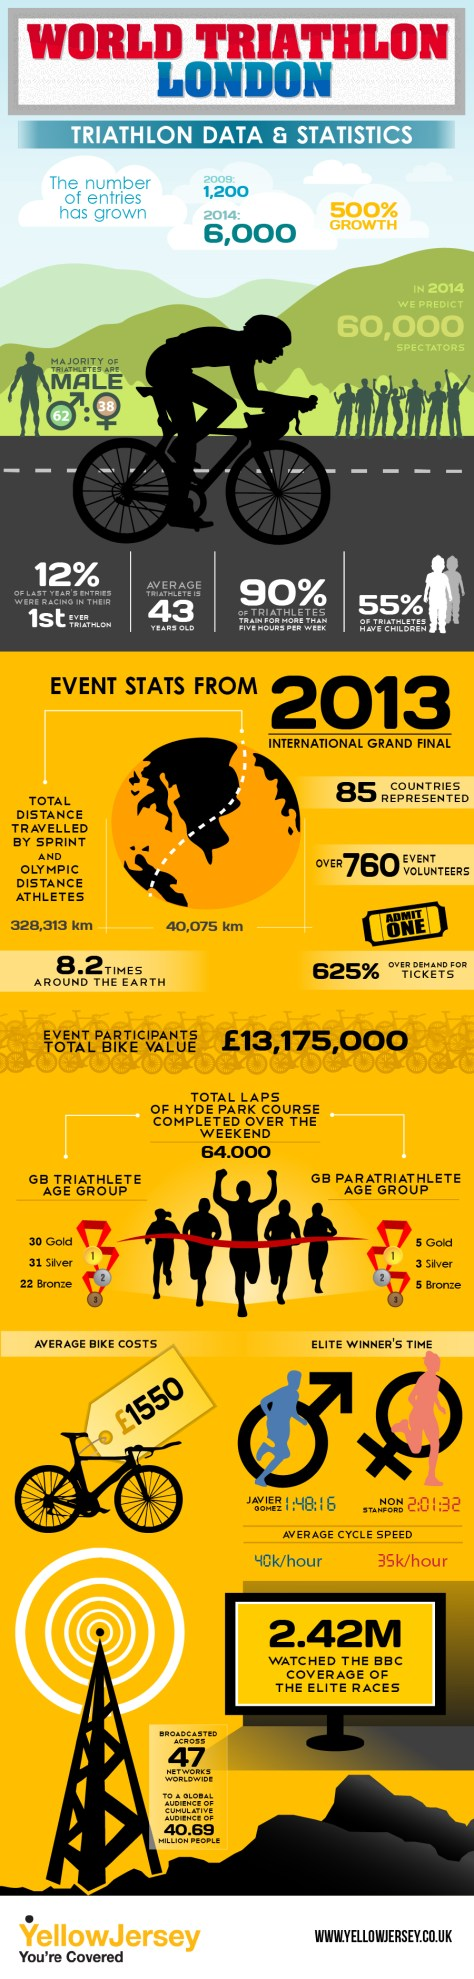 Cyling_YellowJersey_Infographic